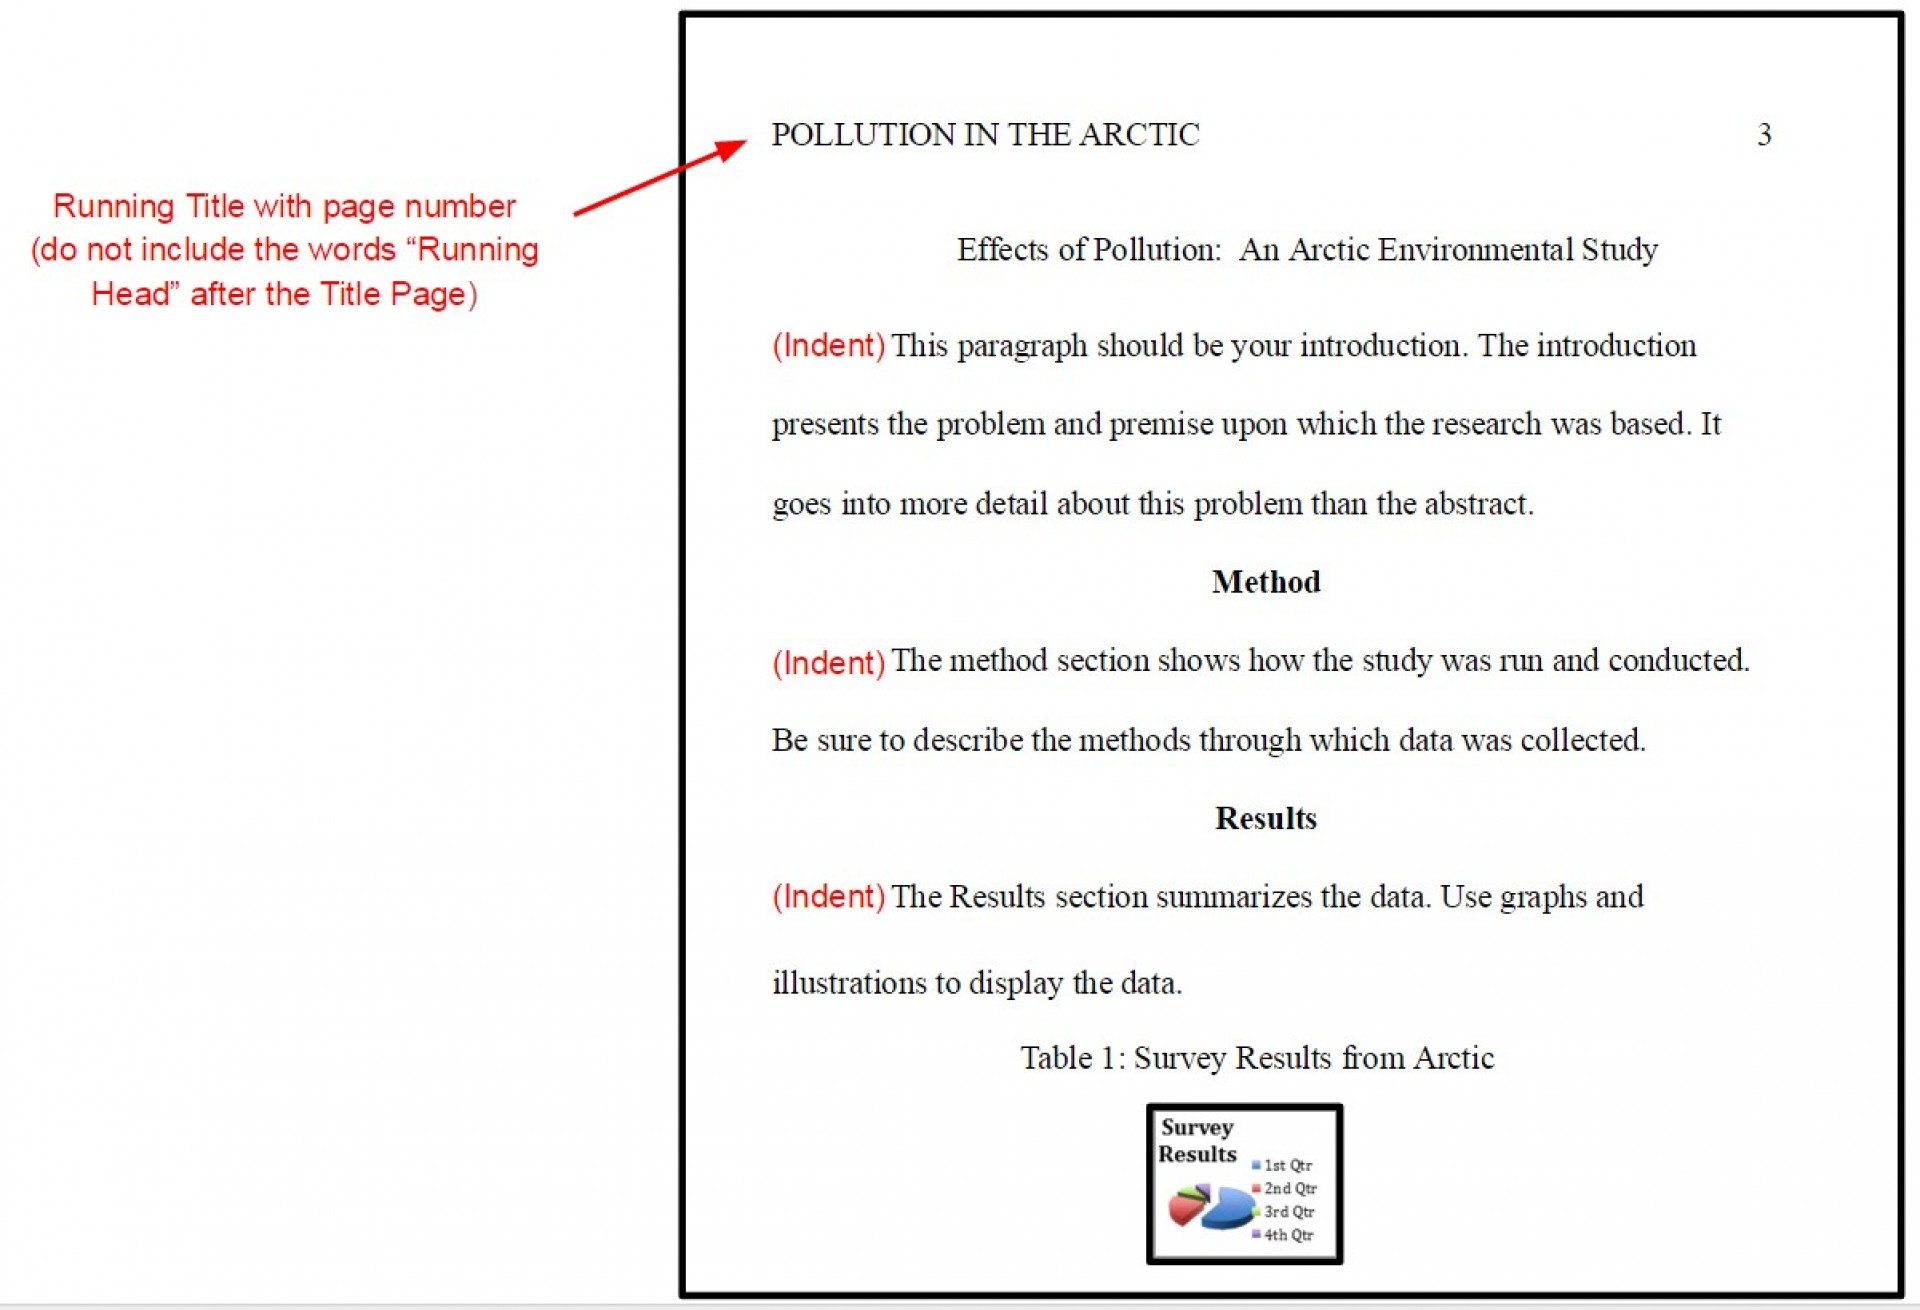 003 Apa Format For Research Paper Imposing Citation Example Sample 1920